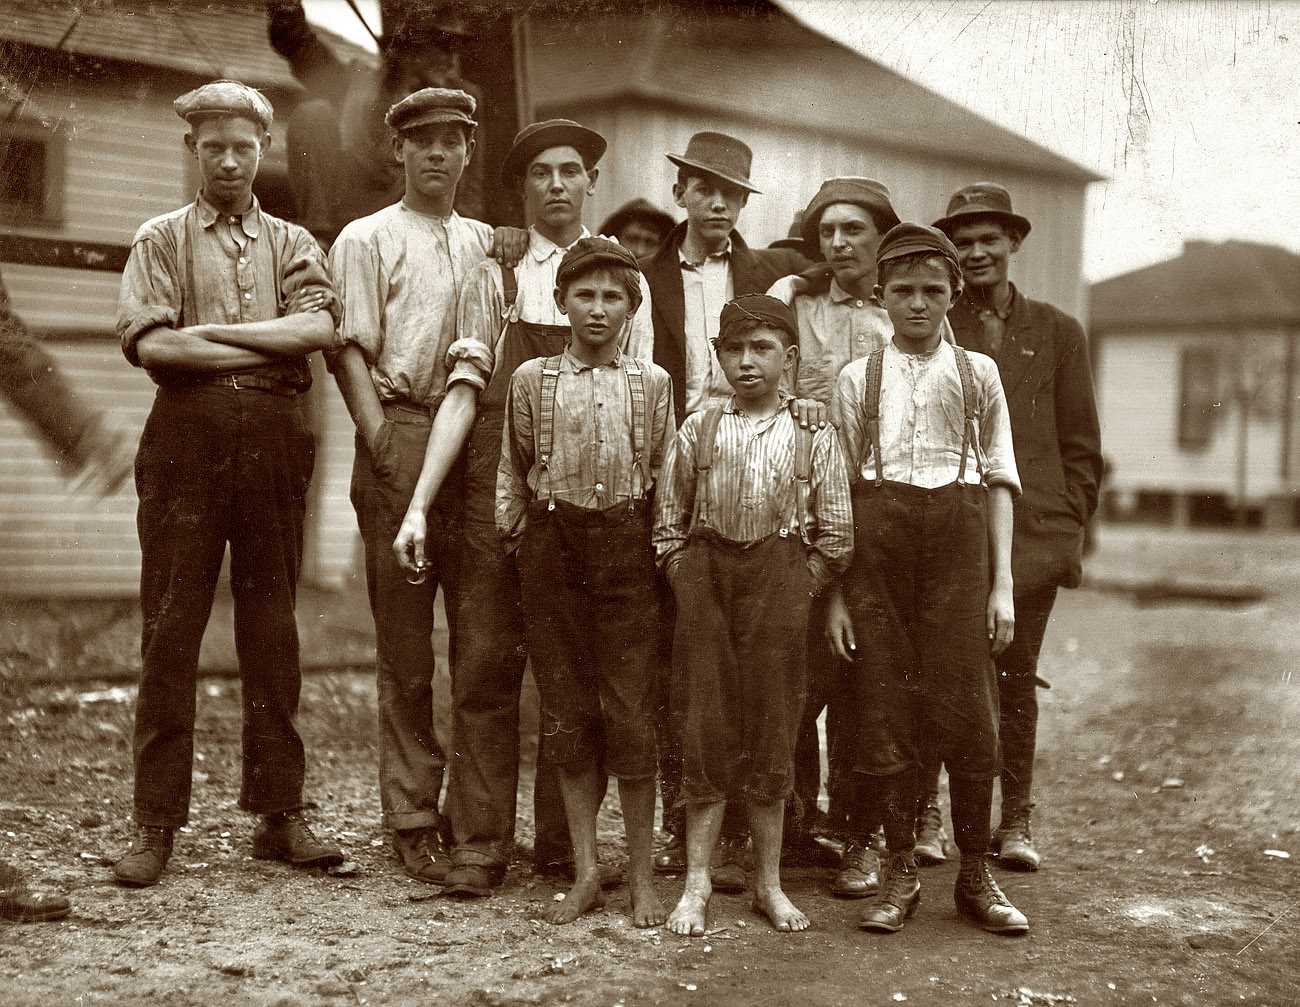 an analysis of the great depression of many families in the early 1900s The great depression  nine thousand banks failed during the months following the stock market crash of 1929 it is far too simplistic to view the stock market.